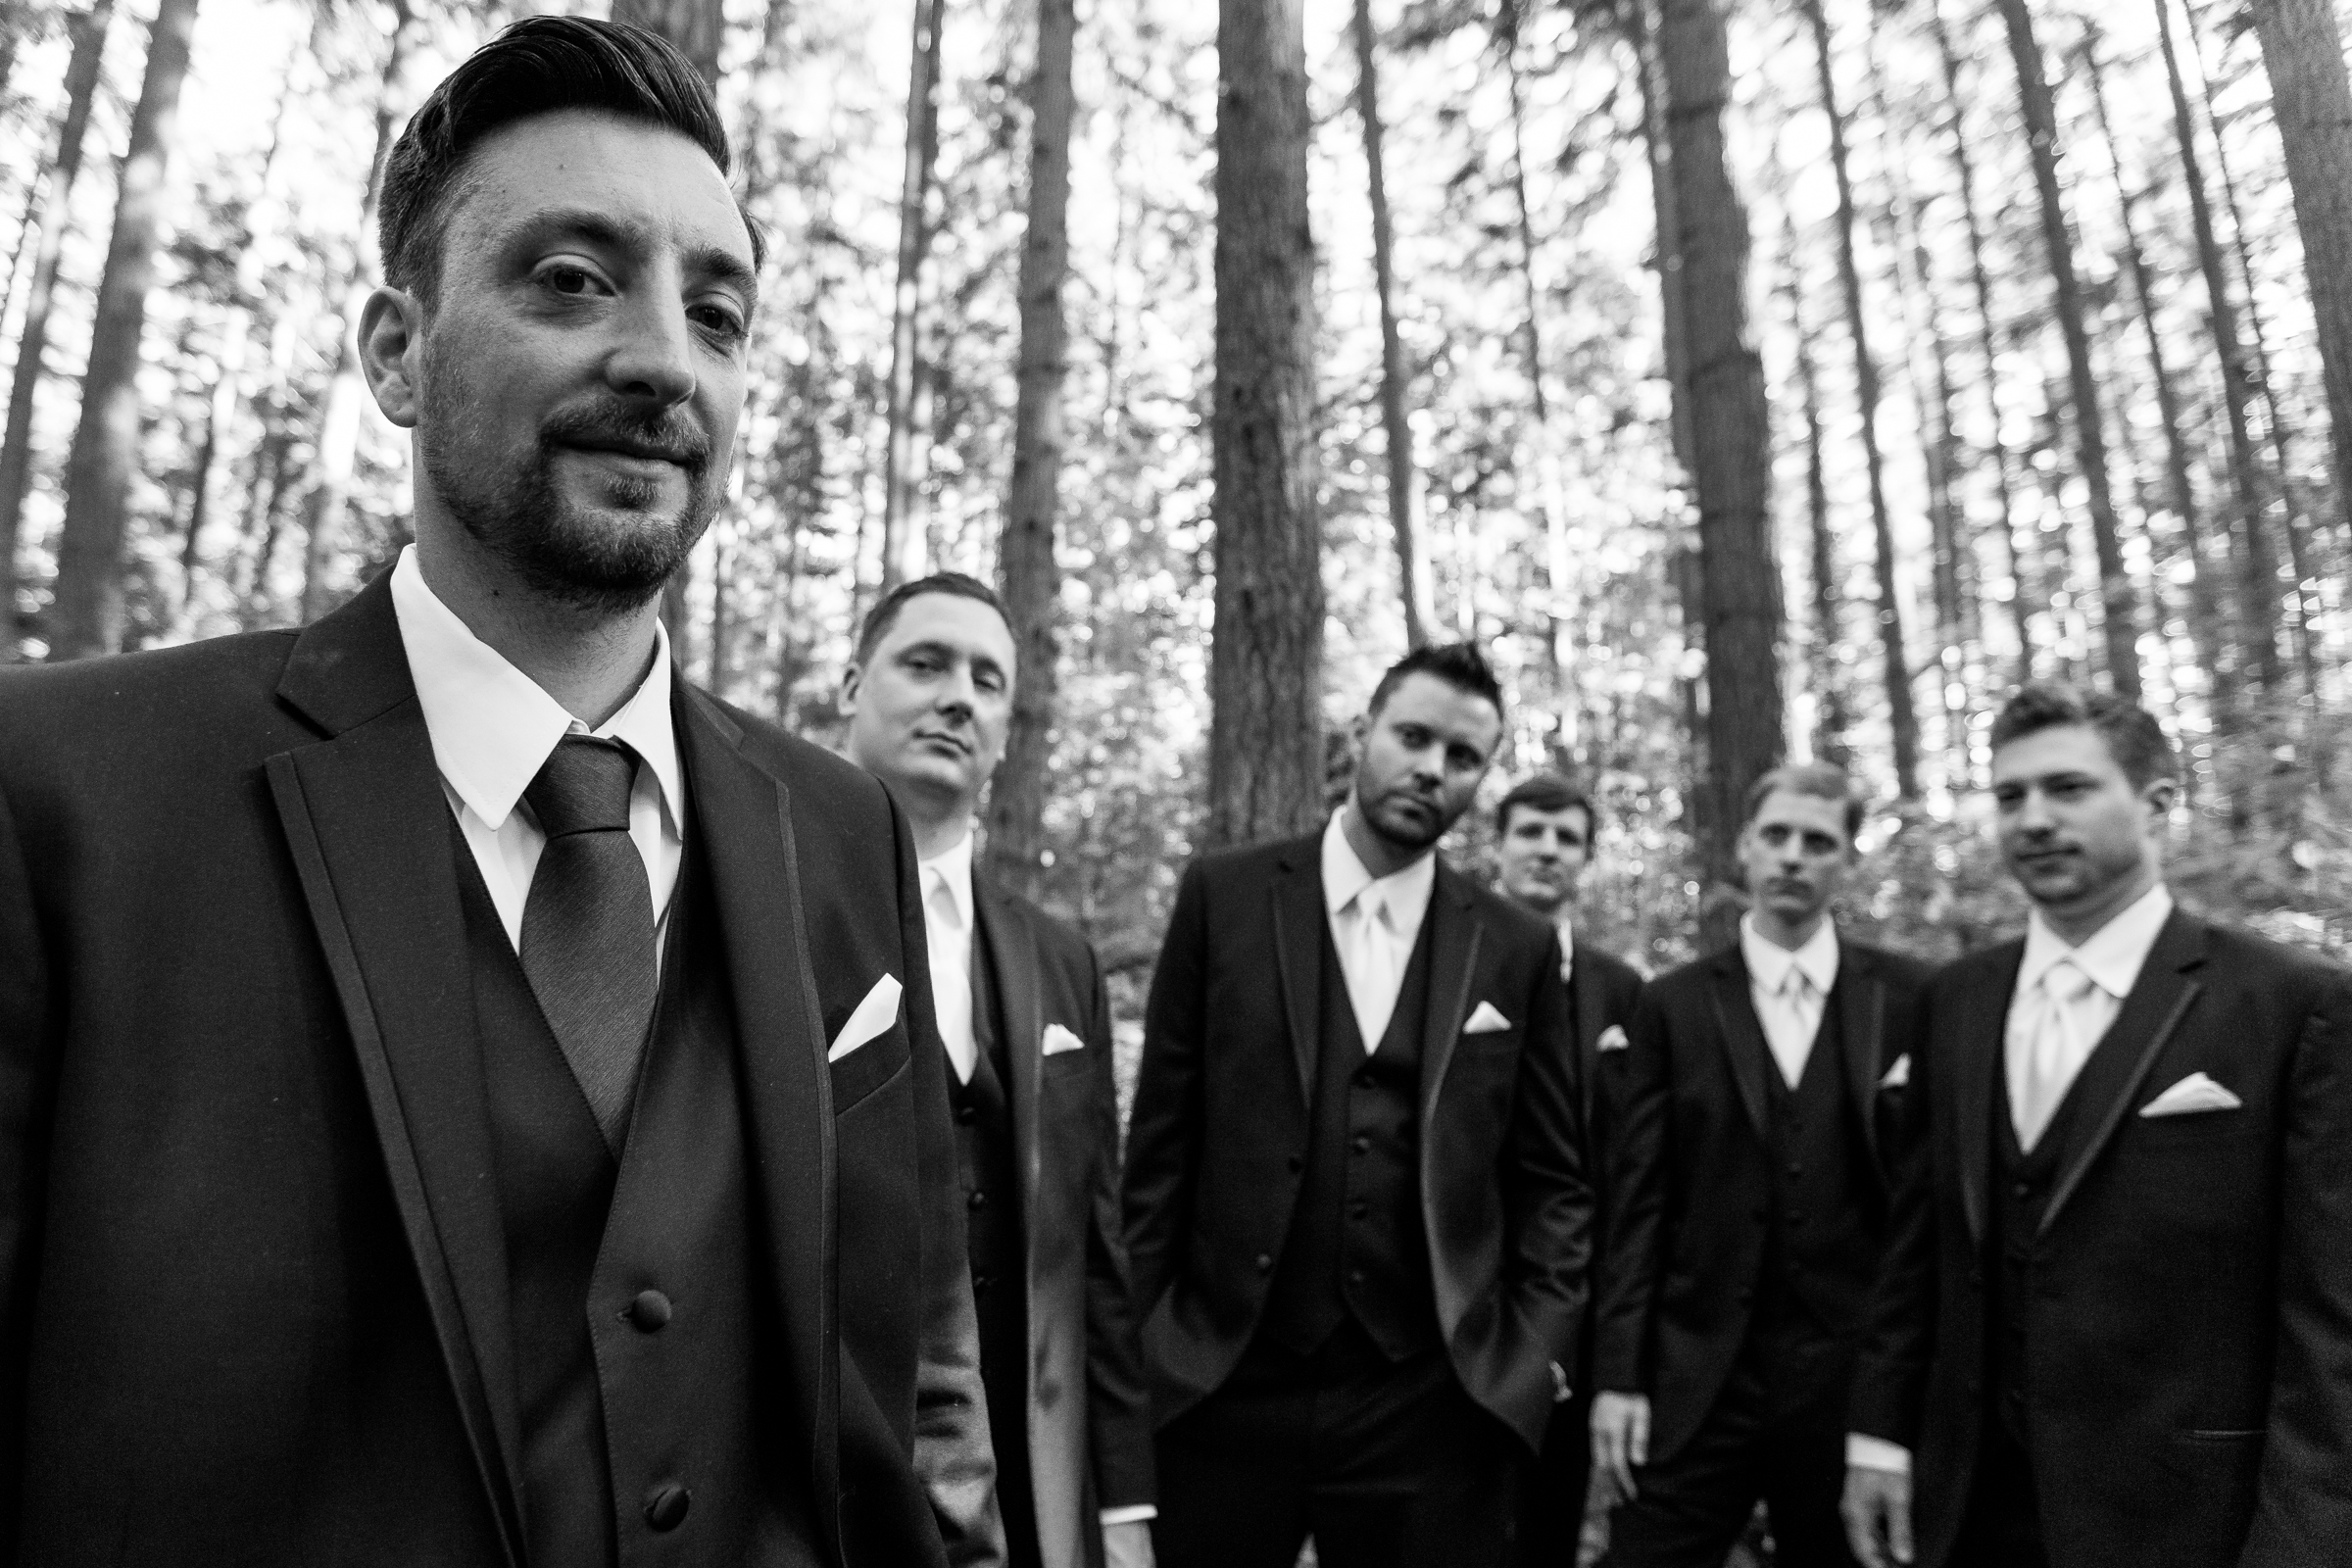 Bellevue Washington Wedding, groomsmen portrait in the woods